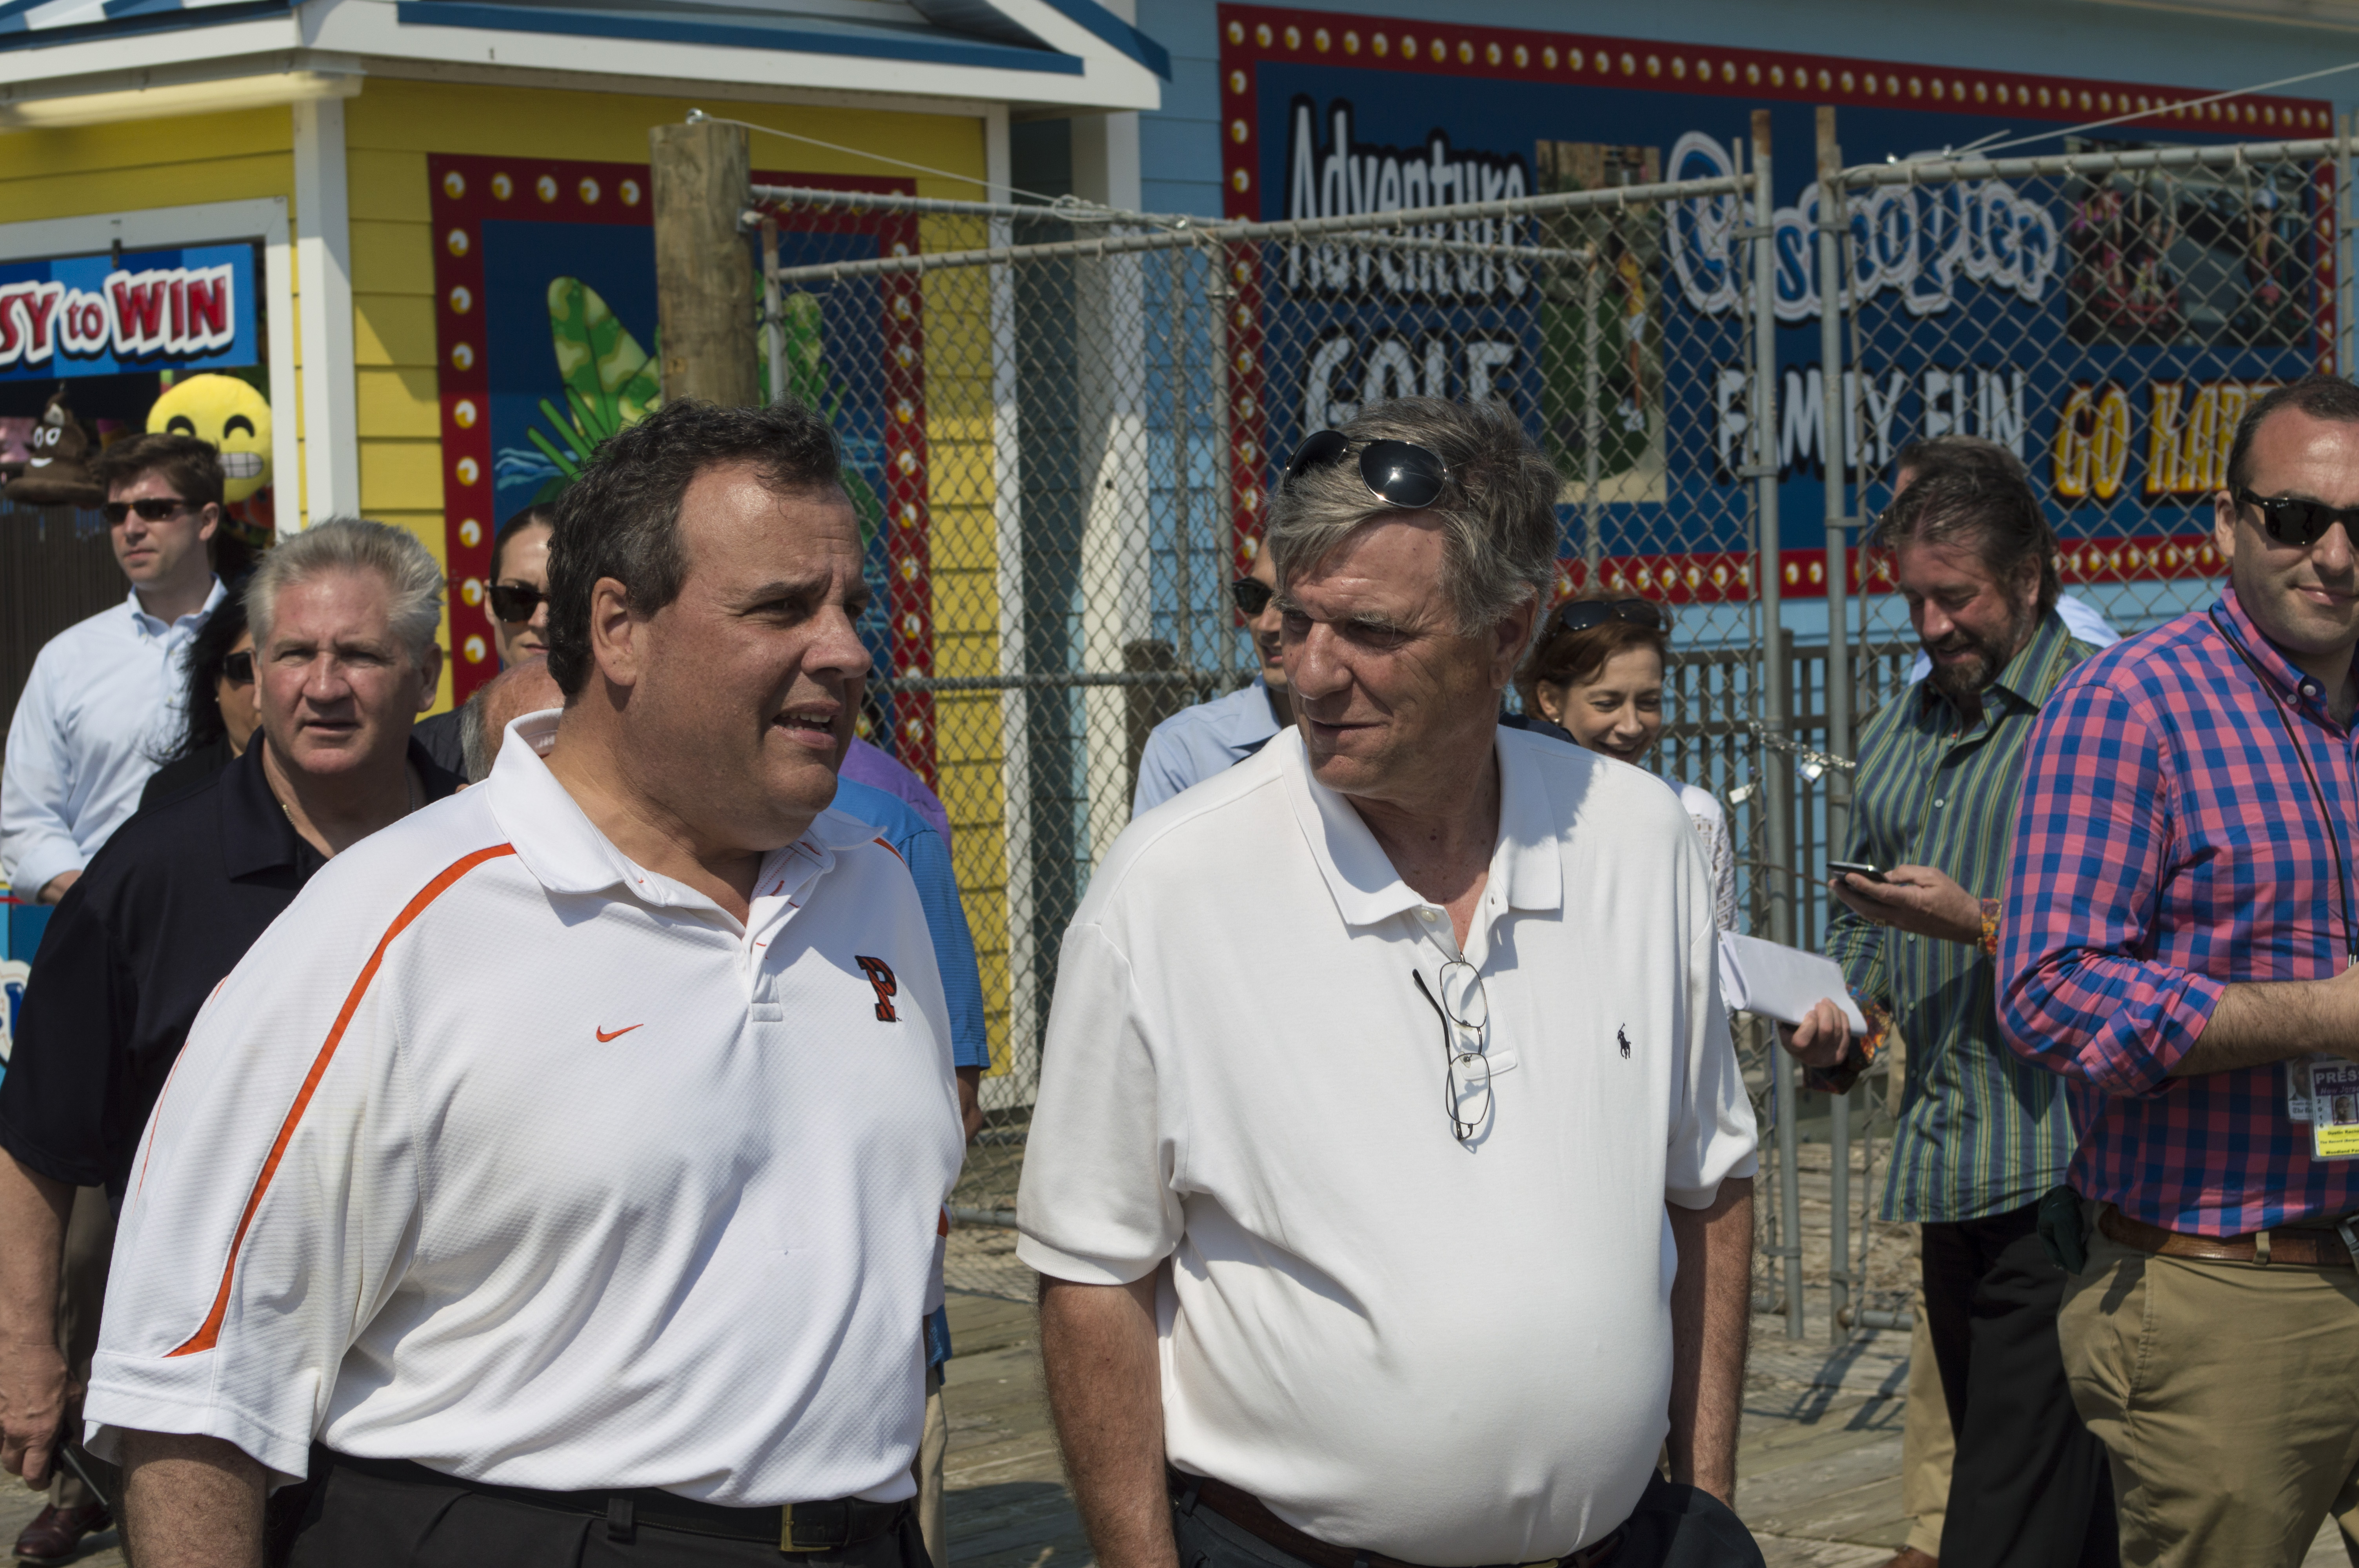 Ocean County GOP Chairman George R. Gilmore walks with Gov. Chris Christie on the Seaside Heights boardwalk. (Photo: Daniel Nee)